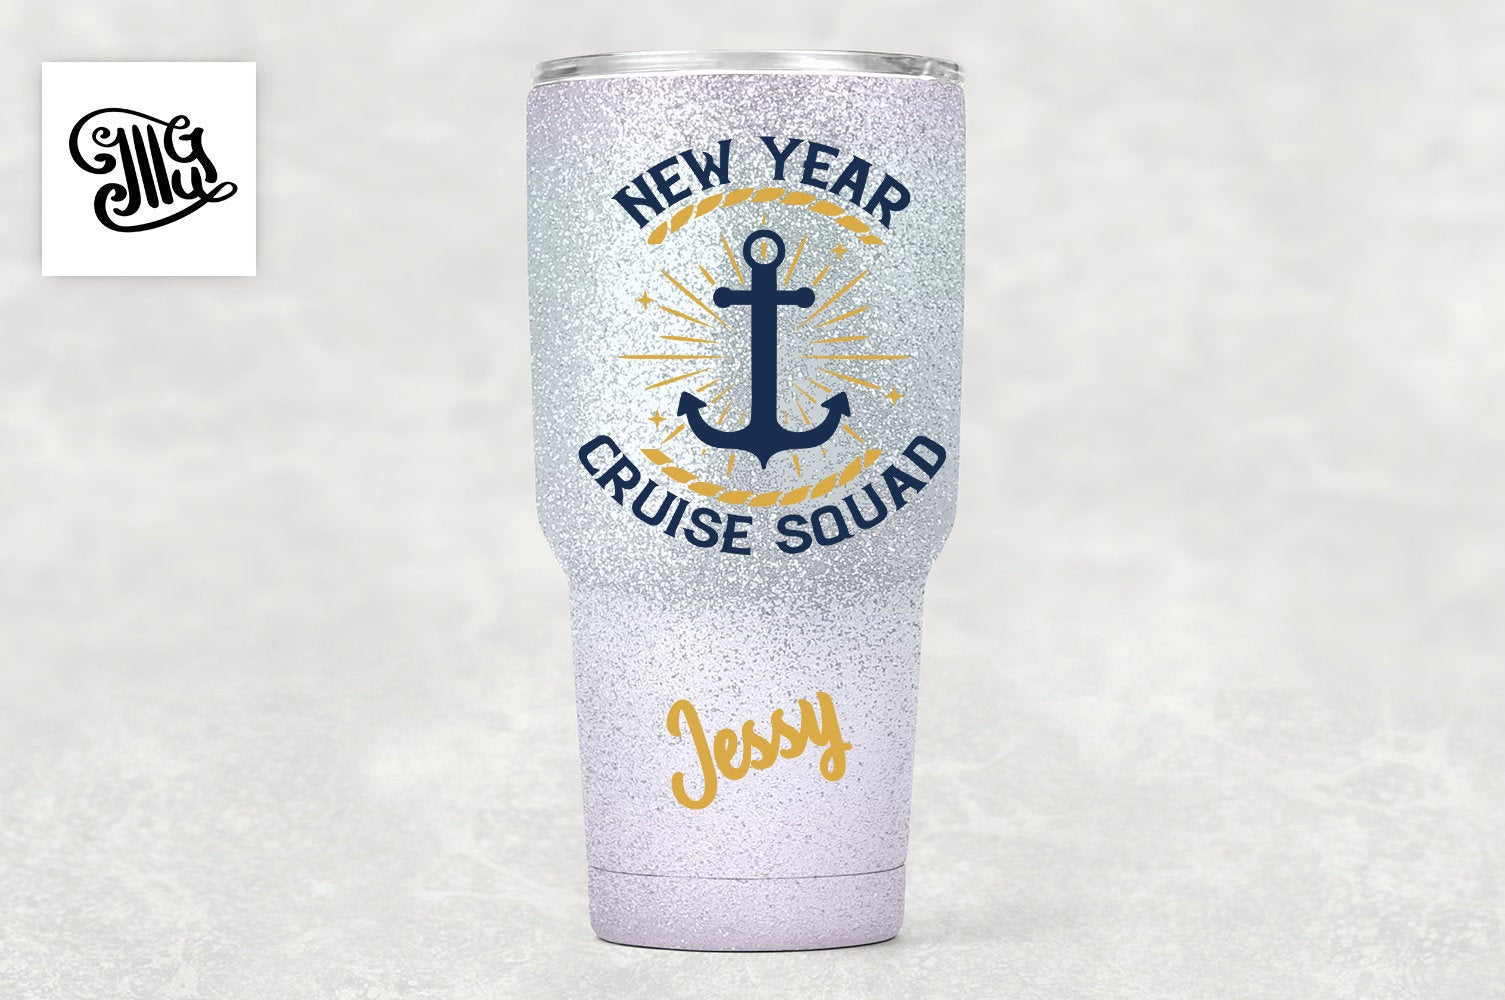 New Year Cruise Squad Svg for Friends and Family Cruise Shirts-by Illustrator Guru